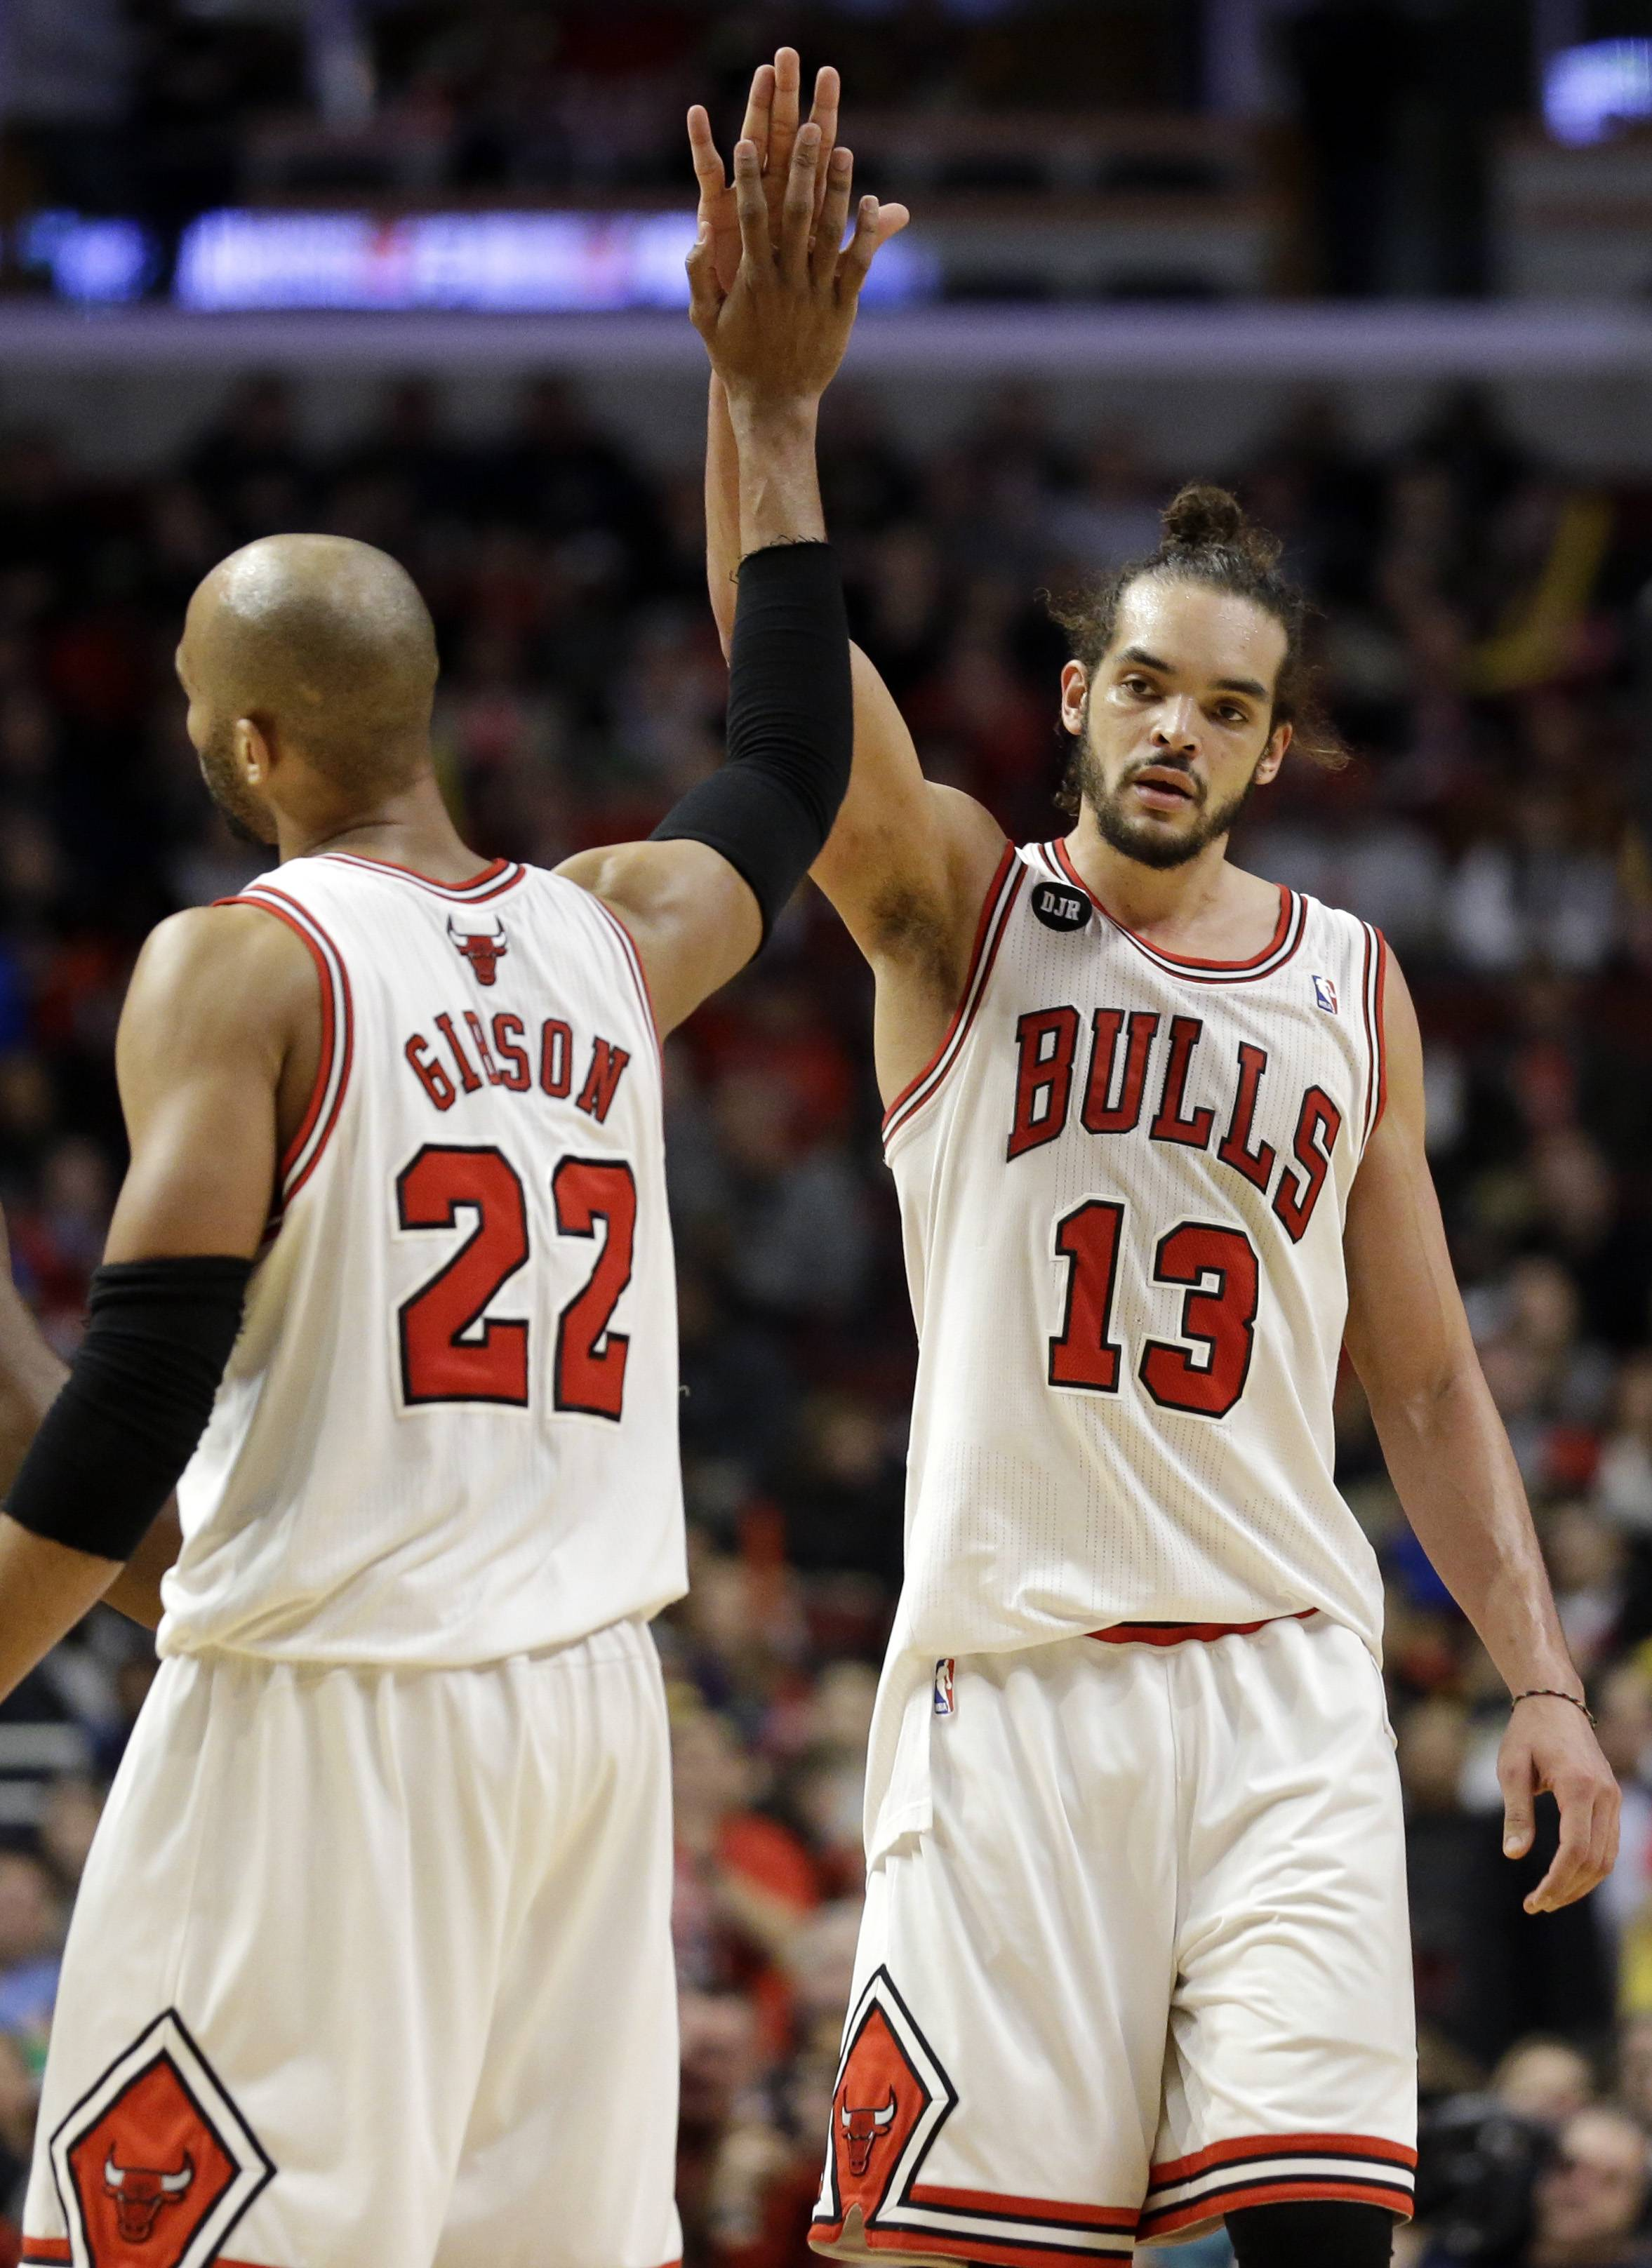 Bulls center Joakim Noah, right, celebrates with forward Taj Gibson after Gibson scored during the second half of Saturday's home game against the Sacramento Kings.